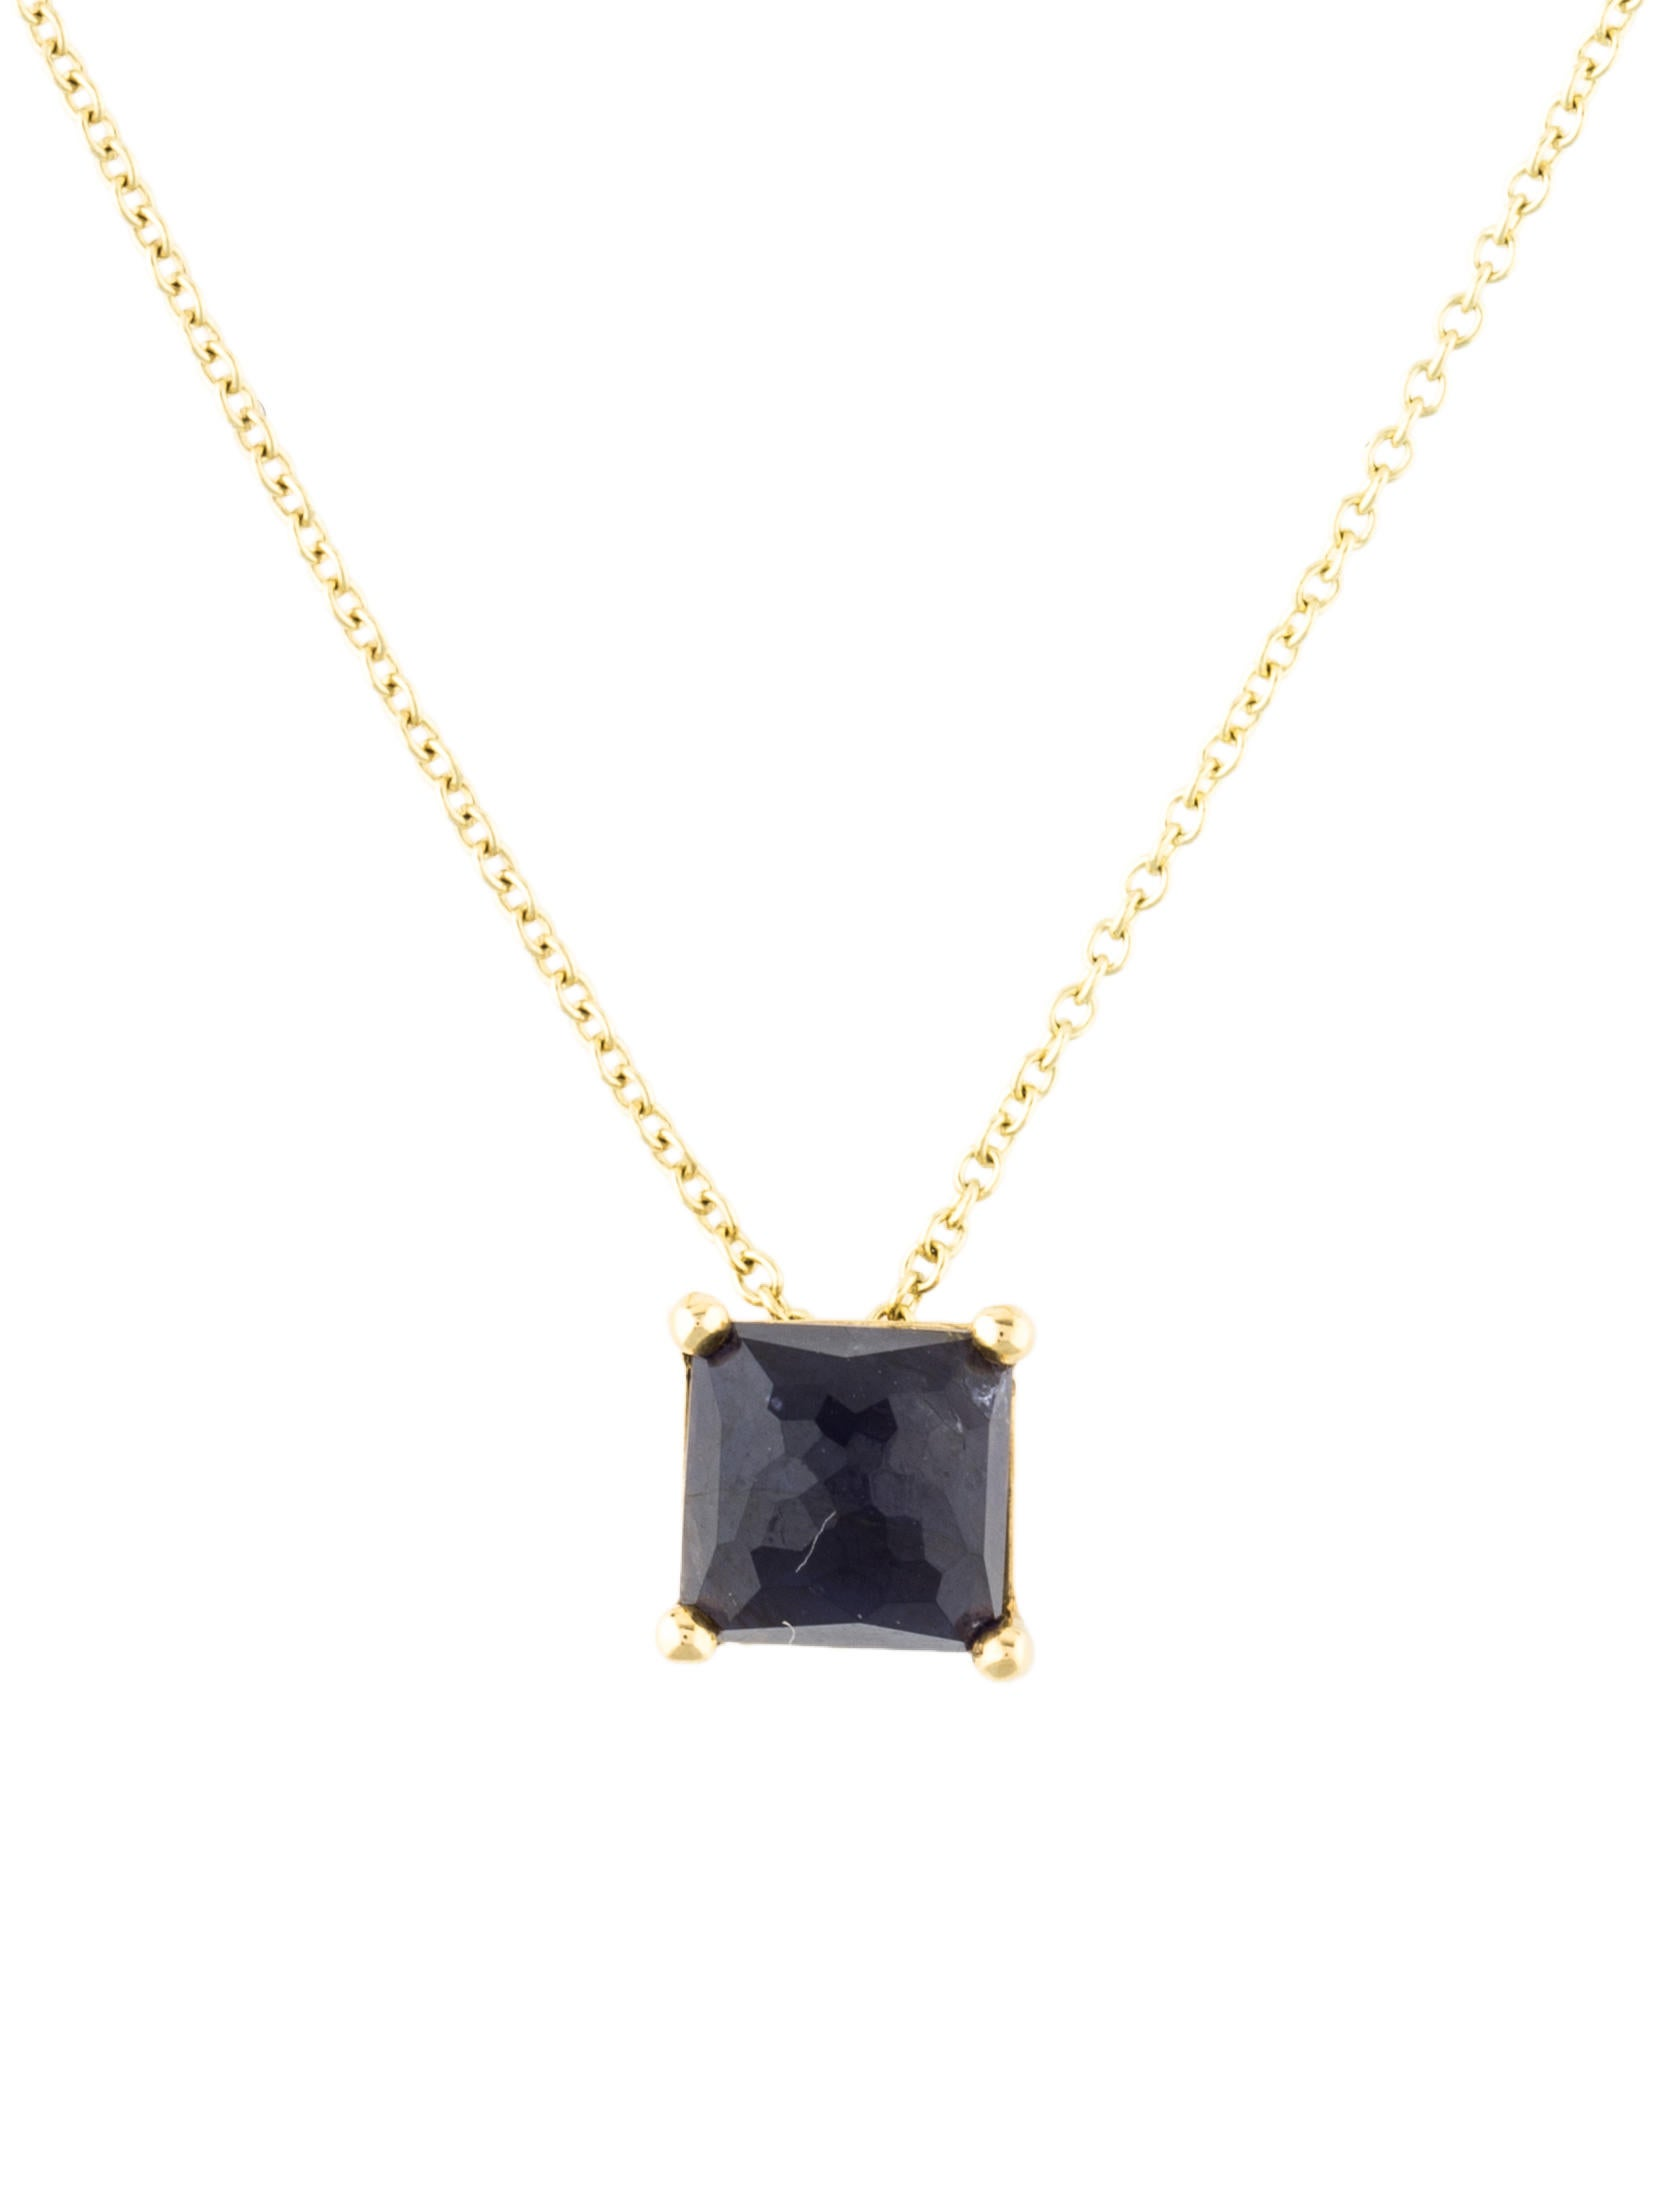 Ippolita 18k Gold Rock Candy Mini Single Square Sliding Pendant Necklace in Iolite